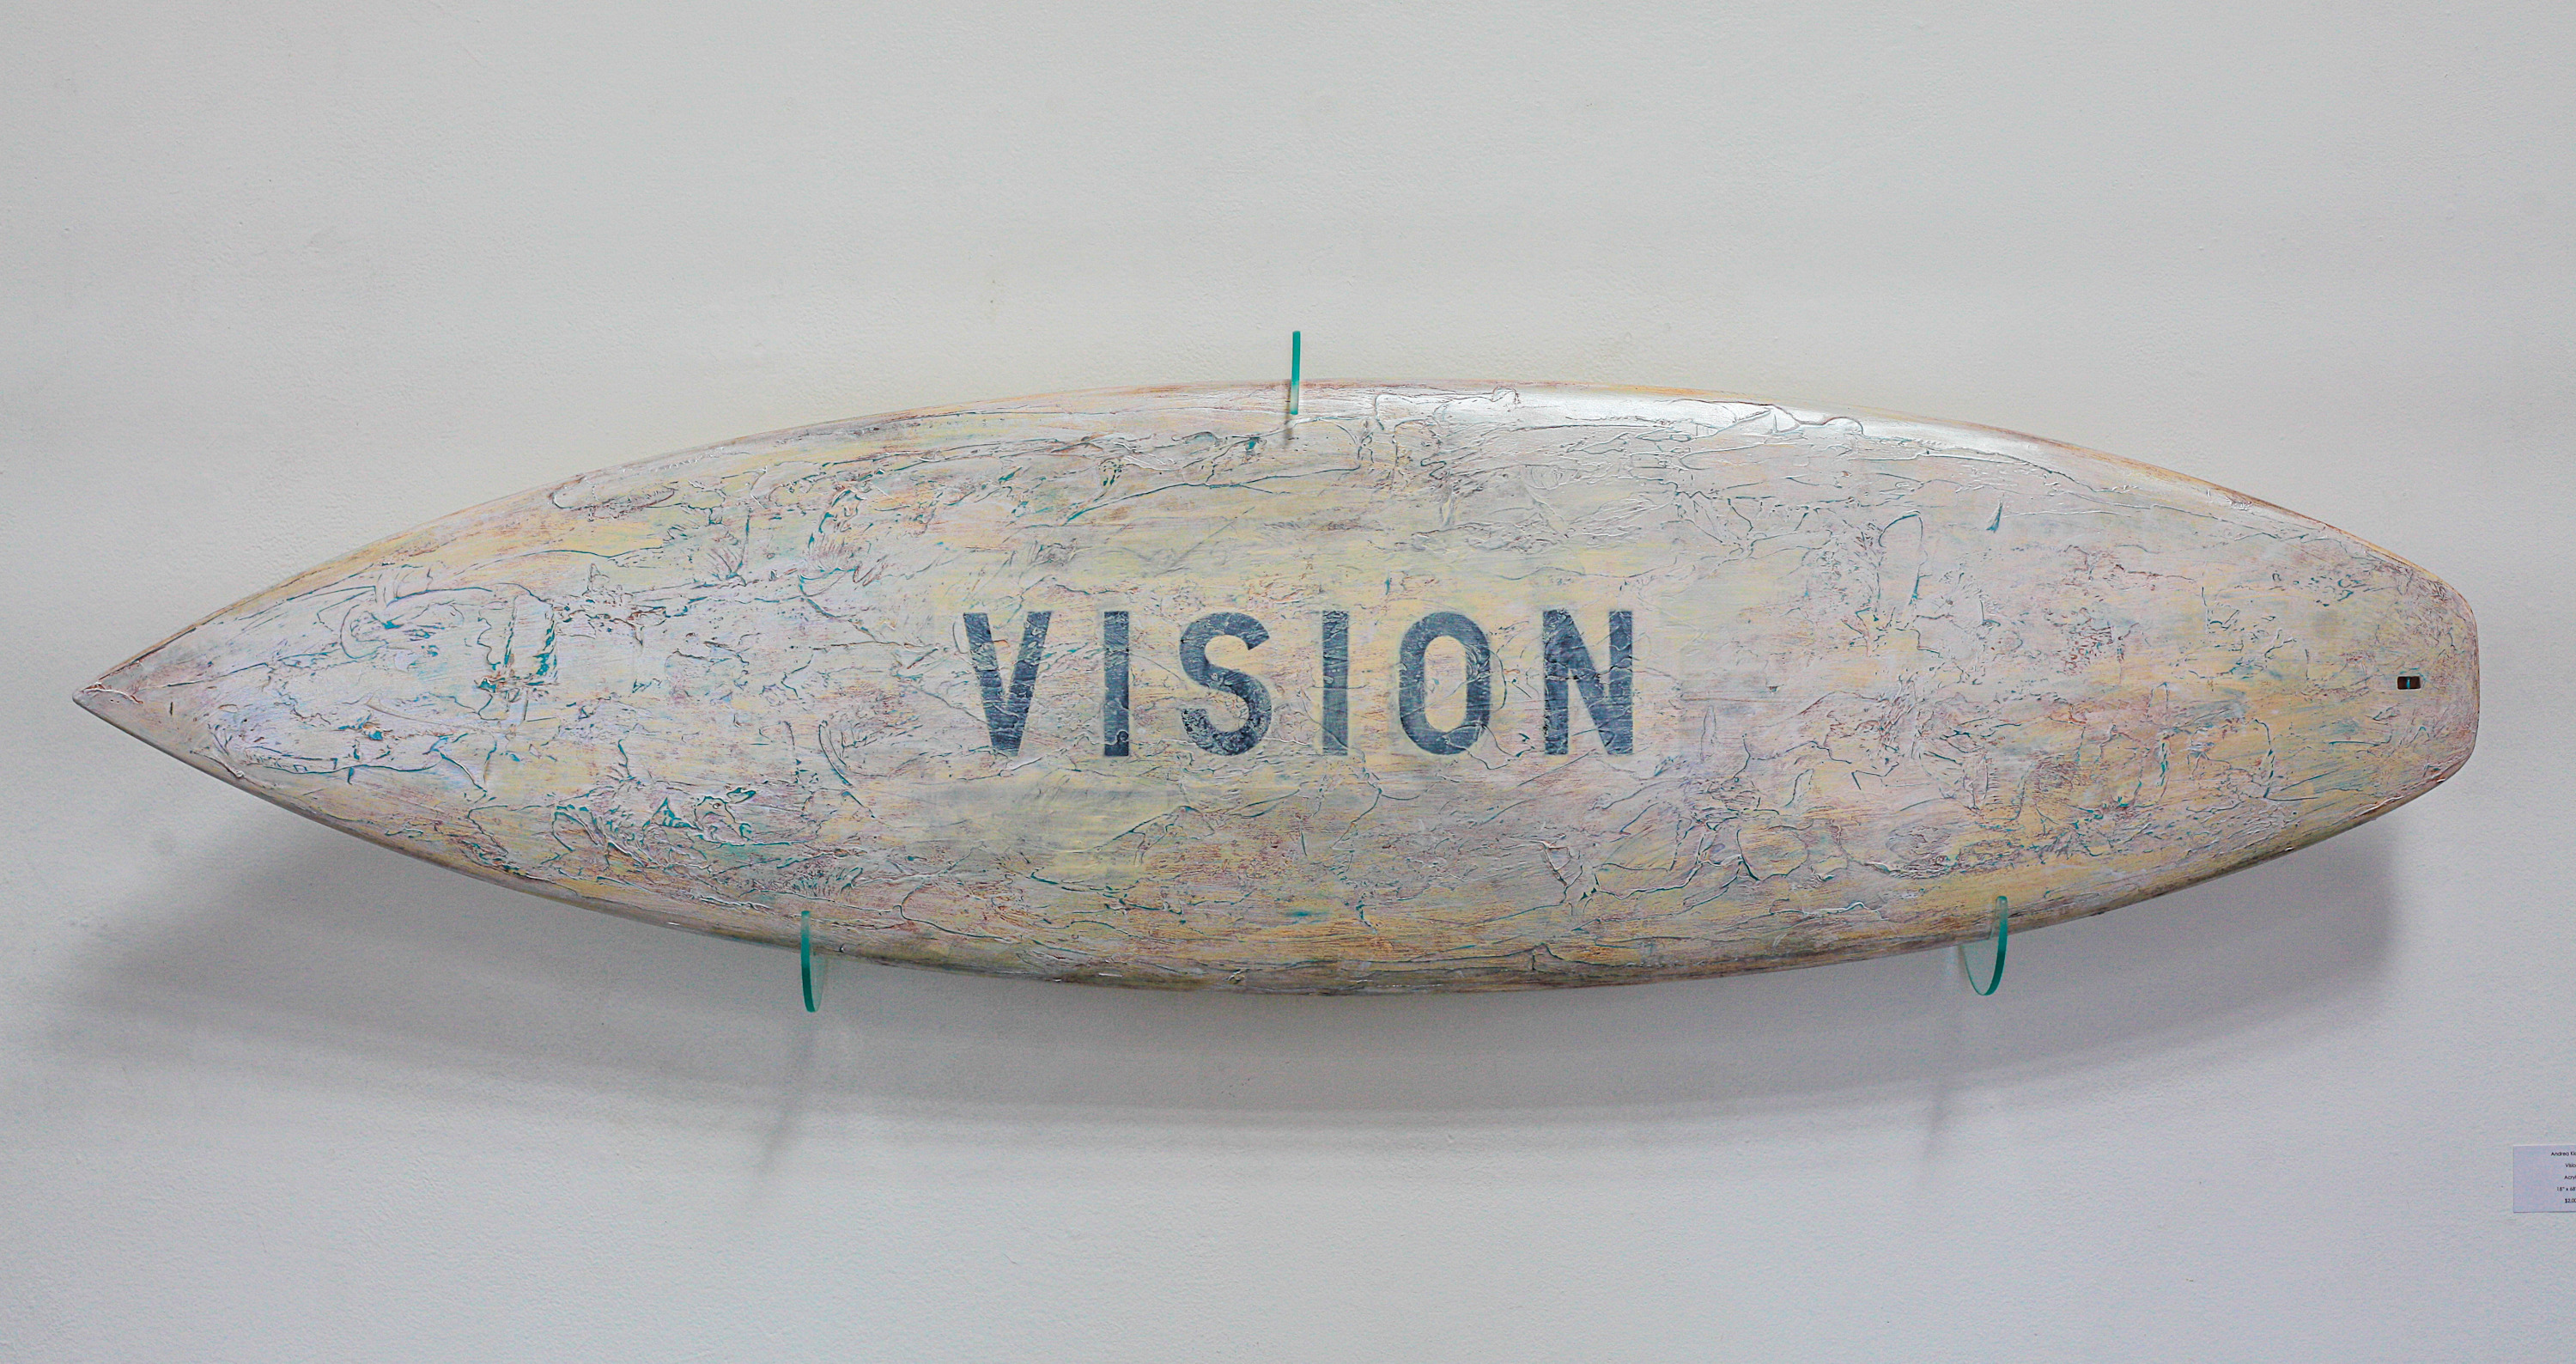 Vision m3bscp